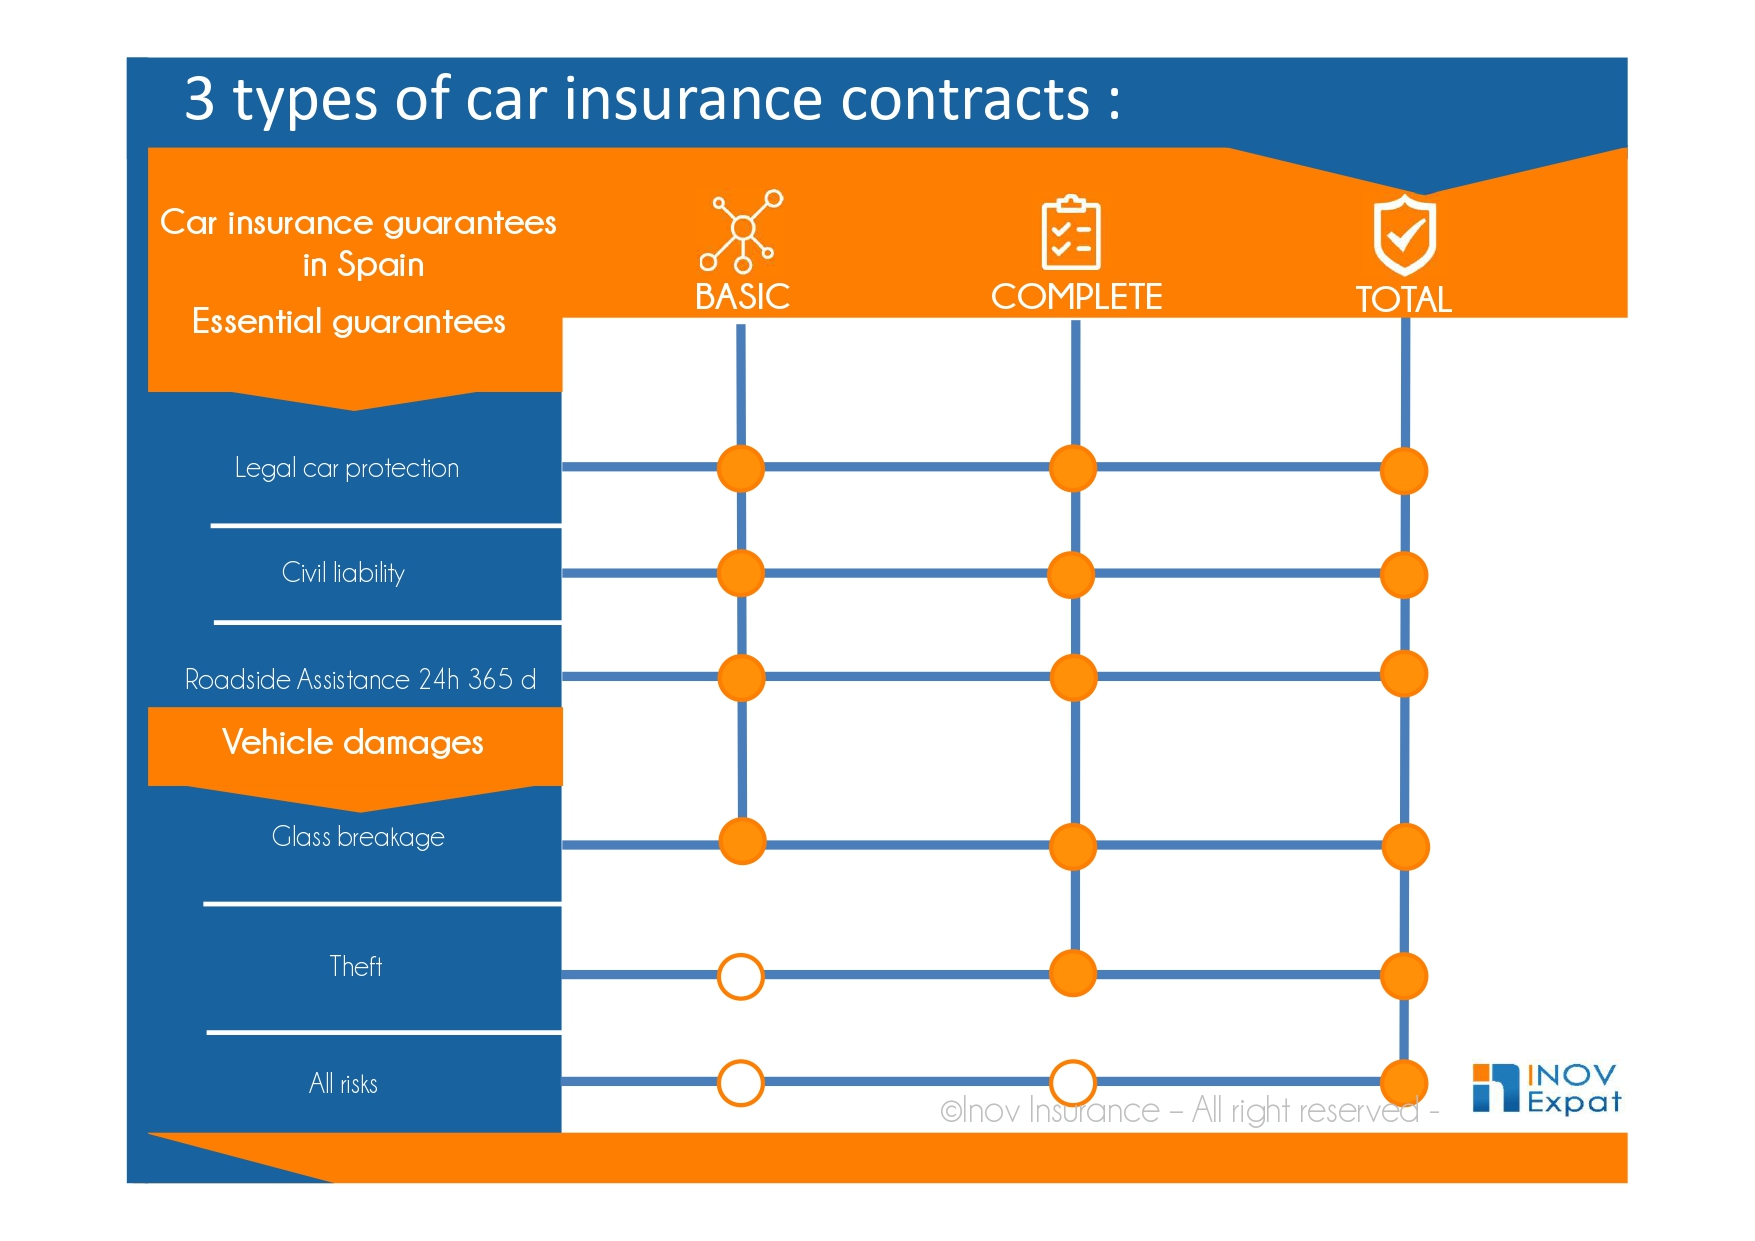 3 types of car insurance contracts